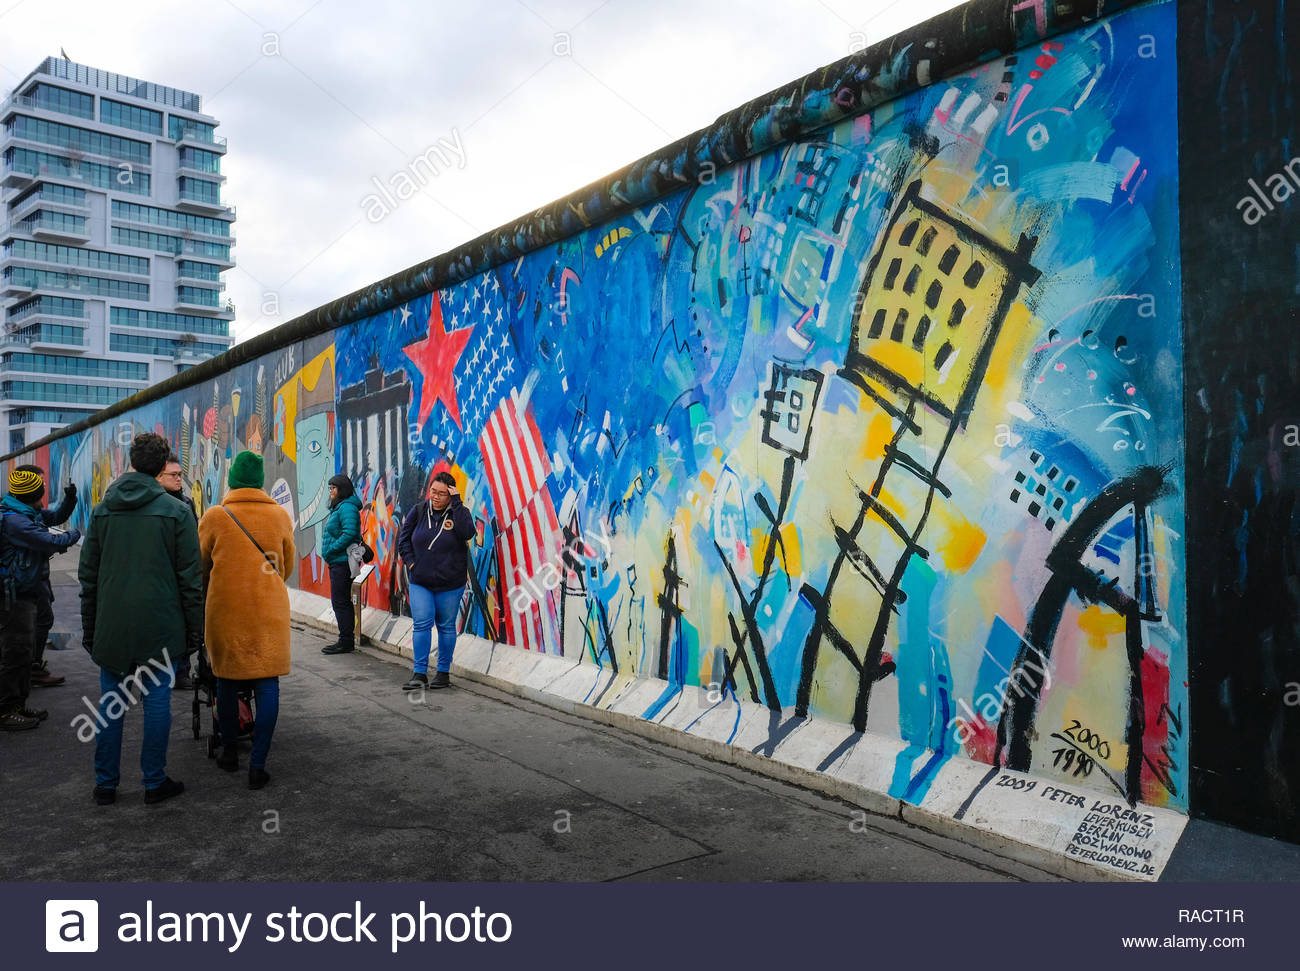 BERLIN - Graffiti at the East Side Gallery - Stock Image